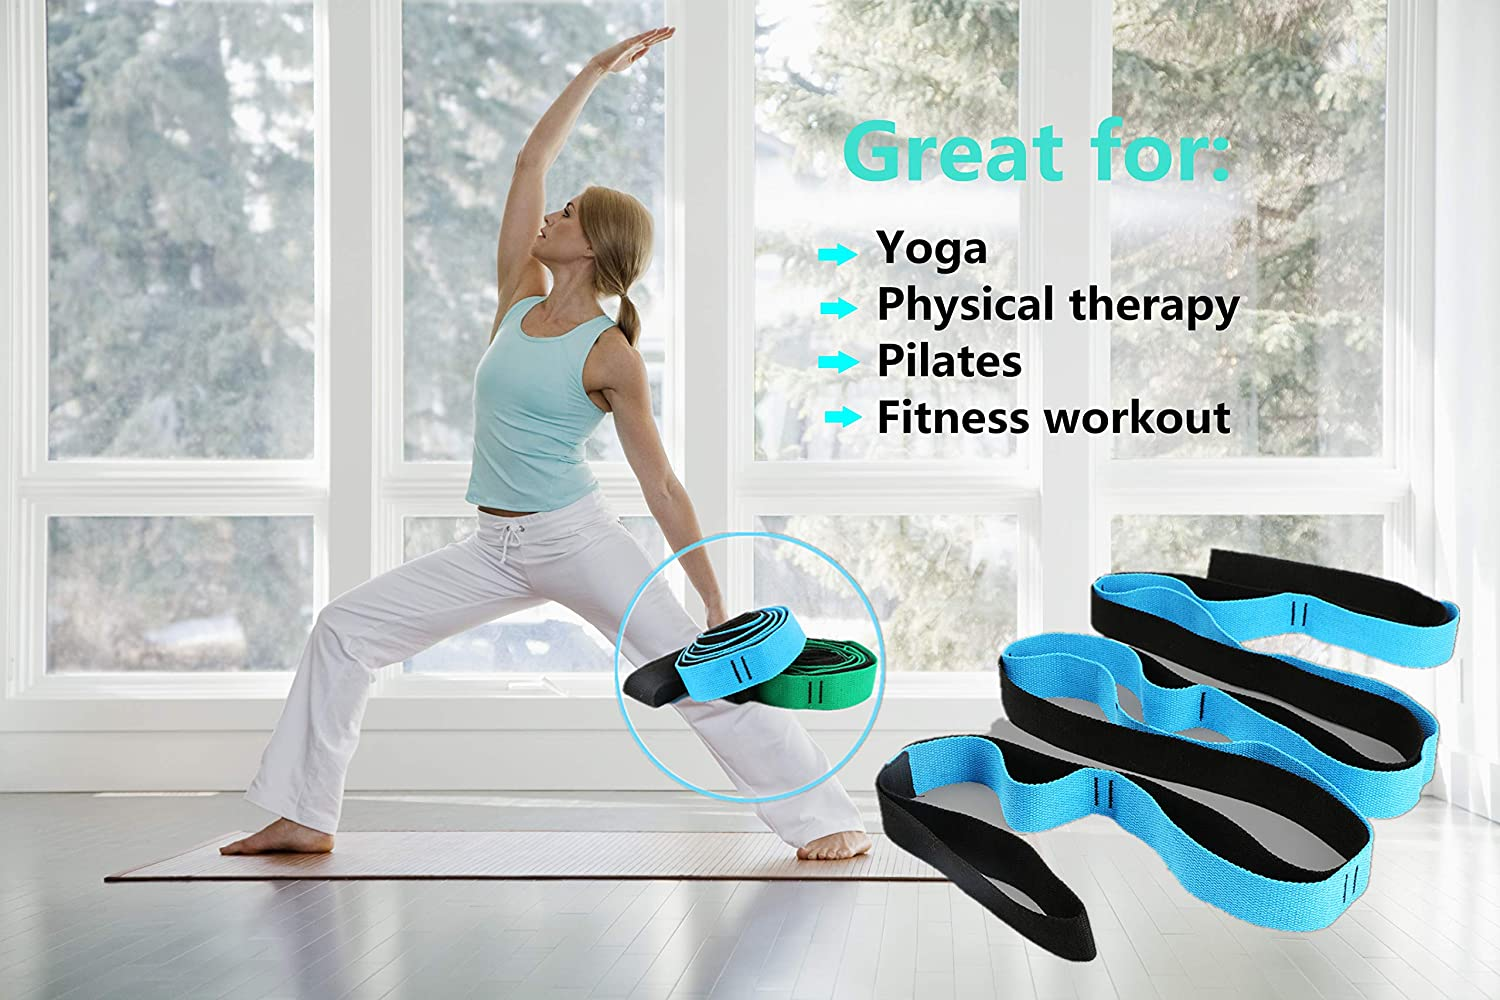 Scotamalone Multi-Loop Yoga Stretch Strap Stretch Bands Exercise Bands Rehab Strap for Rehab Dance and Gymnastics with Instructional Guide Stretching,Physical Therapy Pilates